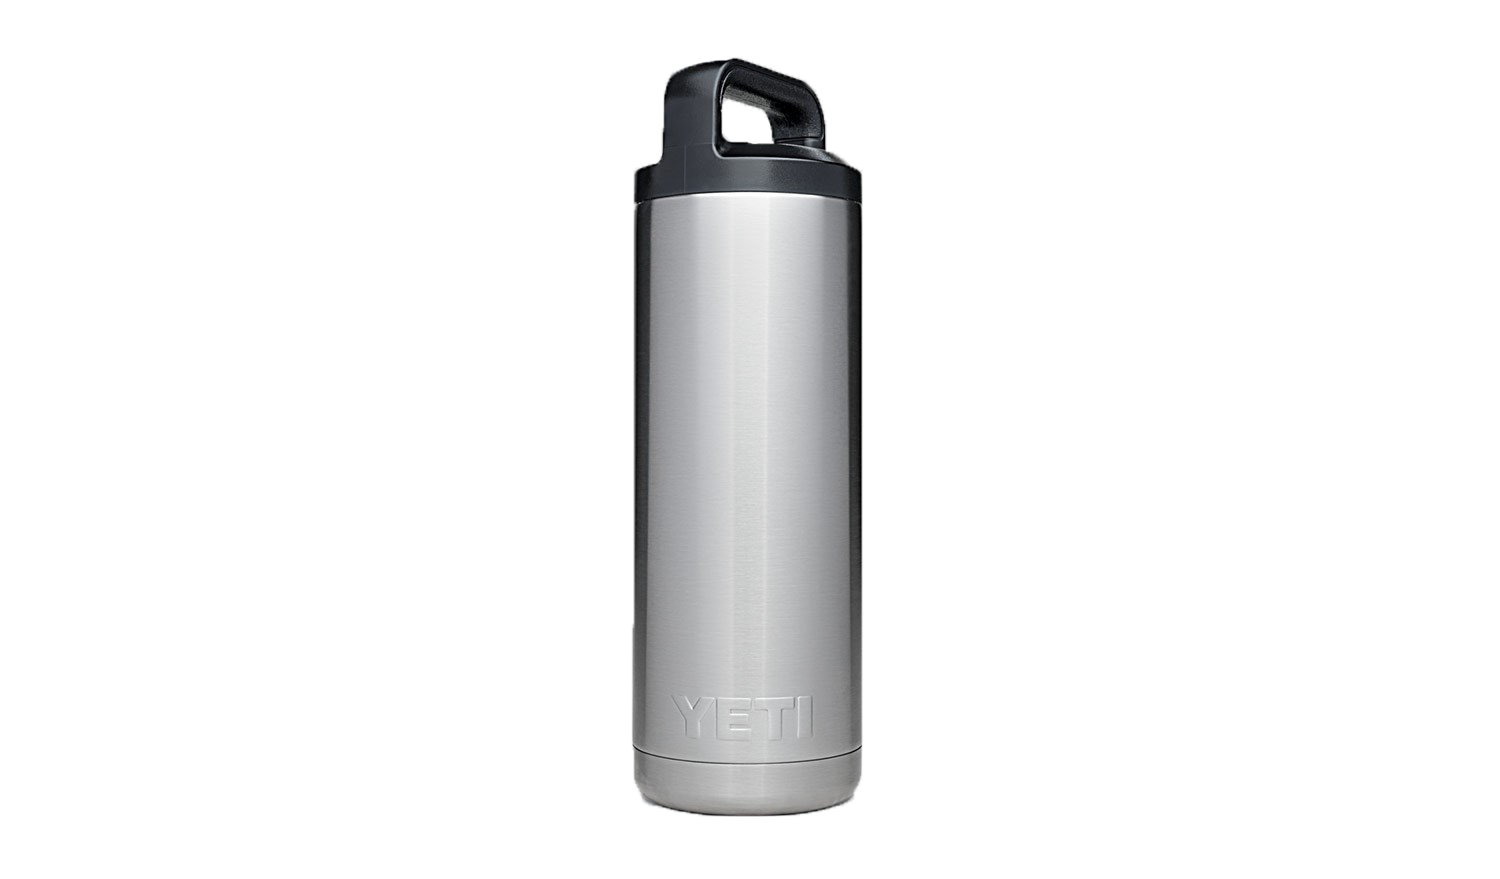 yeti-rambler-bottle-18_5.png